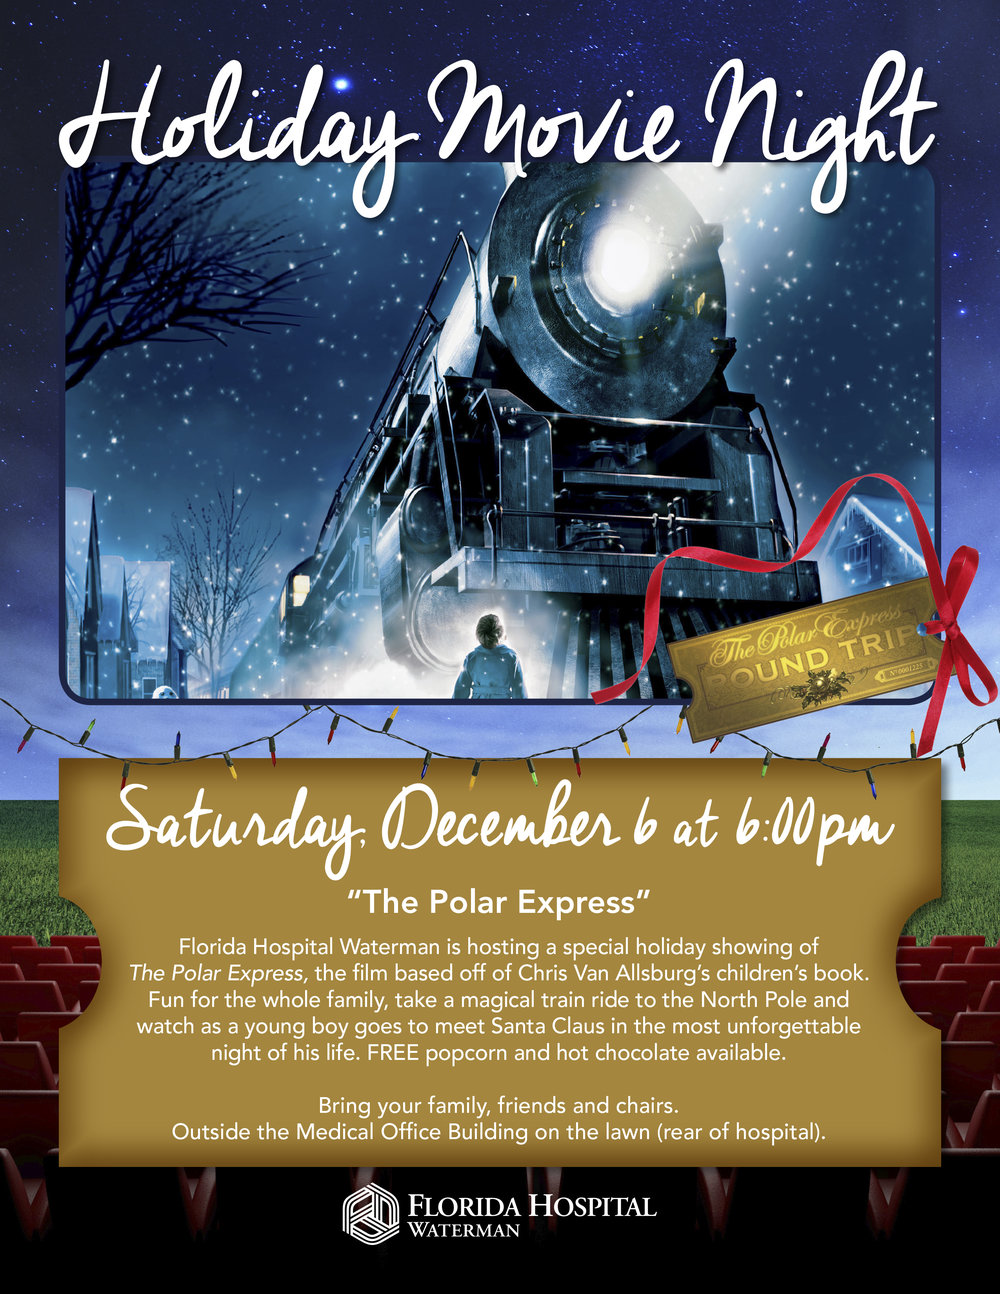 All aboard for Holiday Movie Night!